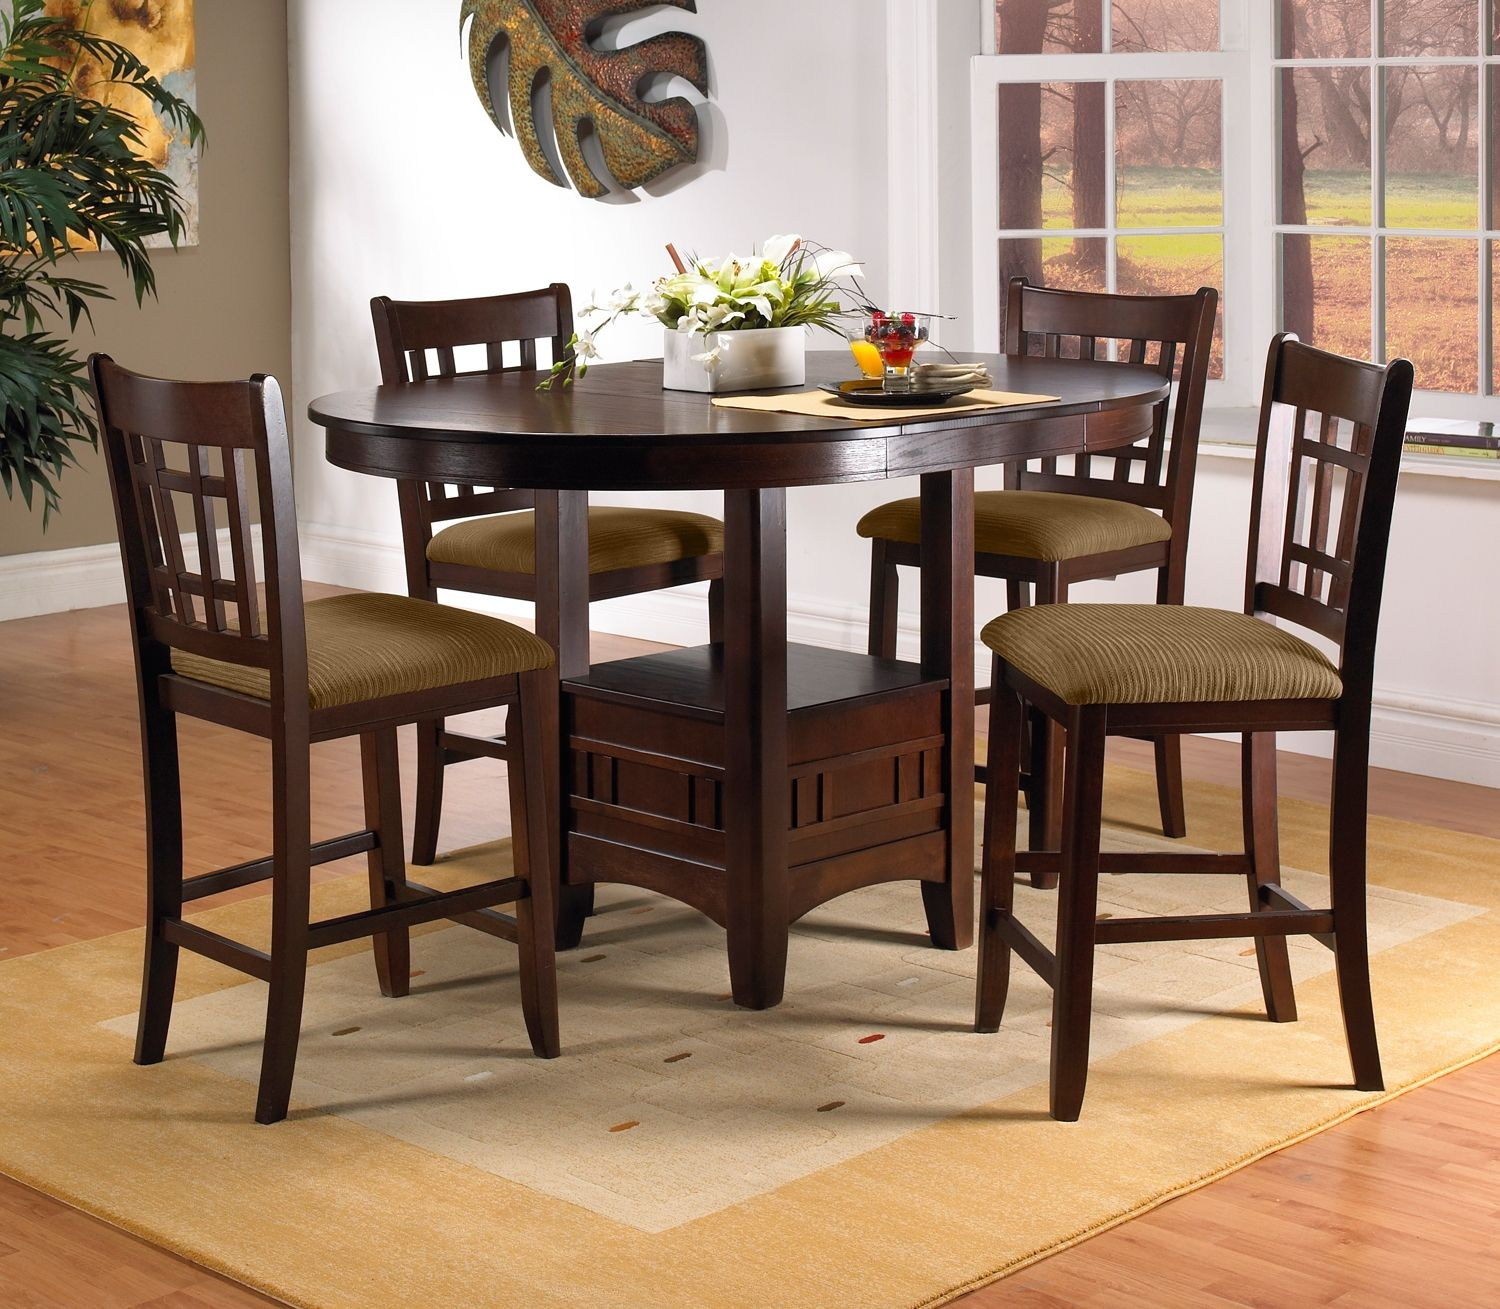 Casual Dining Room Furniture The Brighton II Collection Brighton II Pub  Table